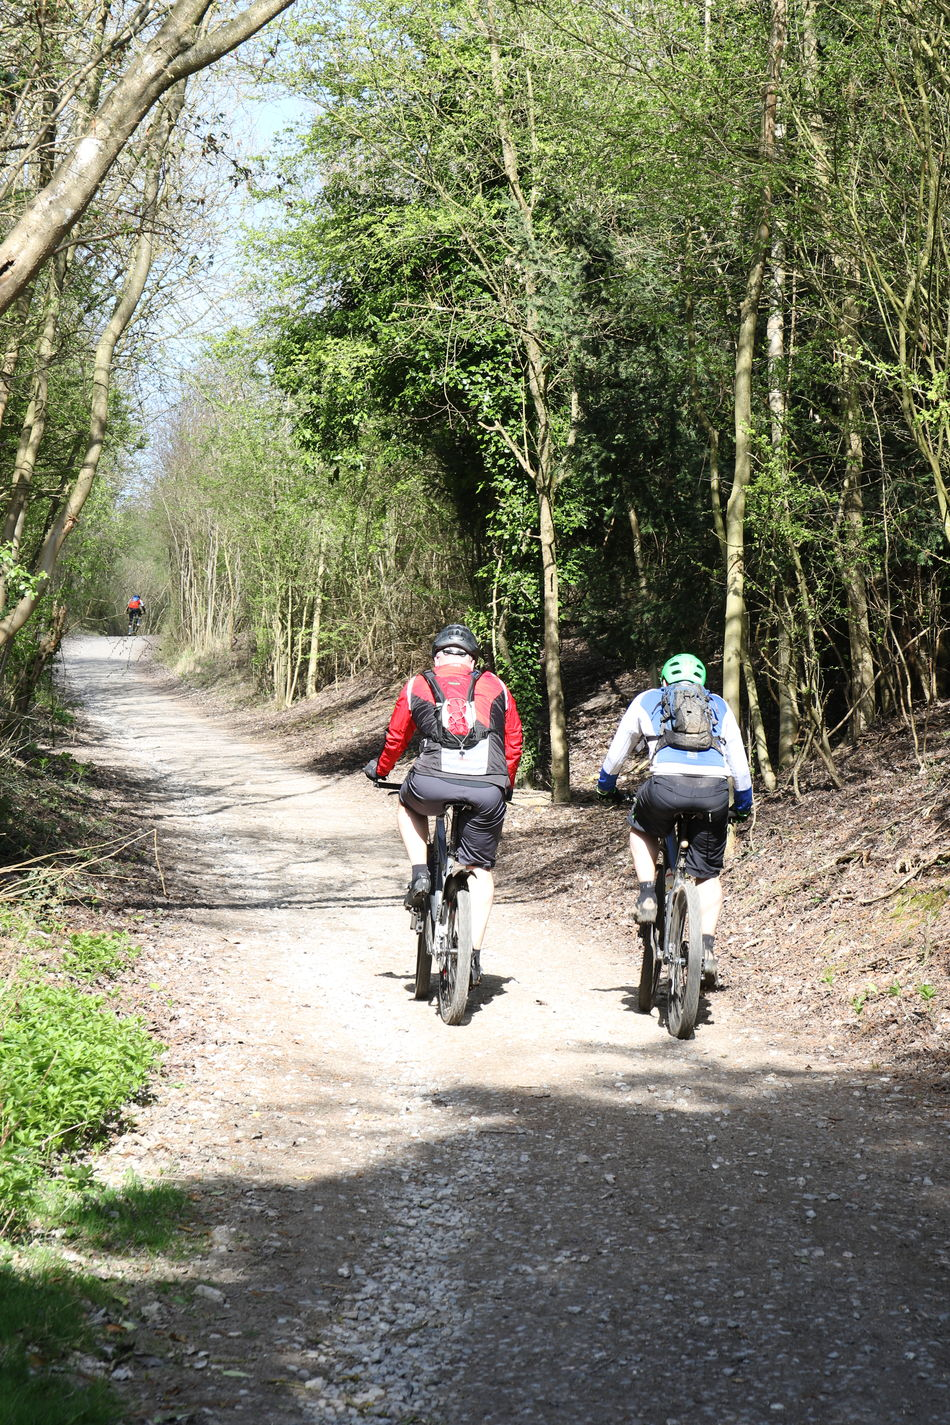 Bicycle Biker Byway Cycling Cycling Helmet Headwear Healthy Lifestyle Leisure Activity Lifestyles Men Mountain Bike Nature Newlands Corner North Downs Outdoors Real People Riding Surrey Countryside Transportation Travel Tree Two People Vacations